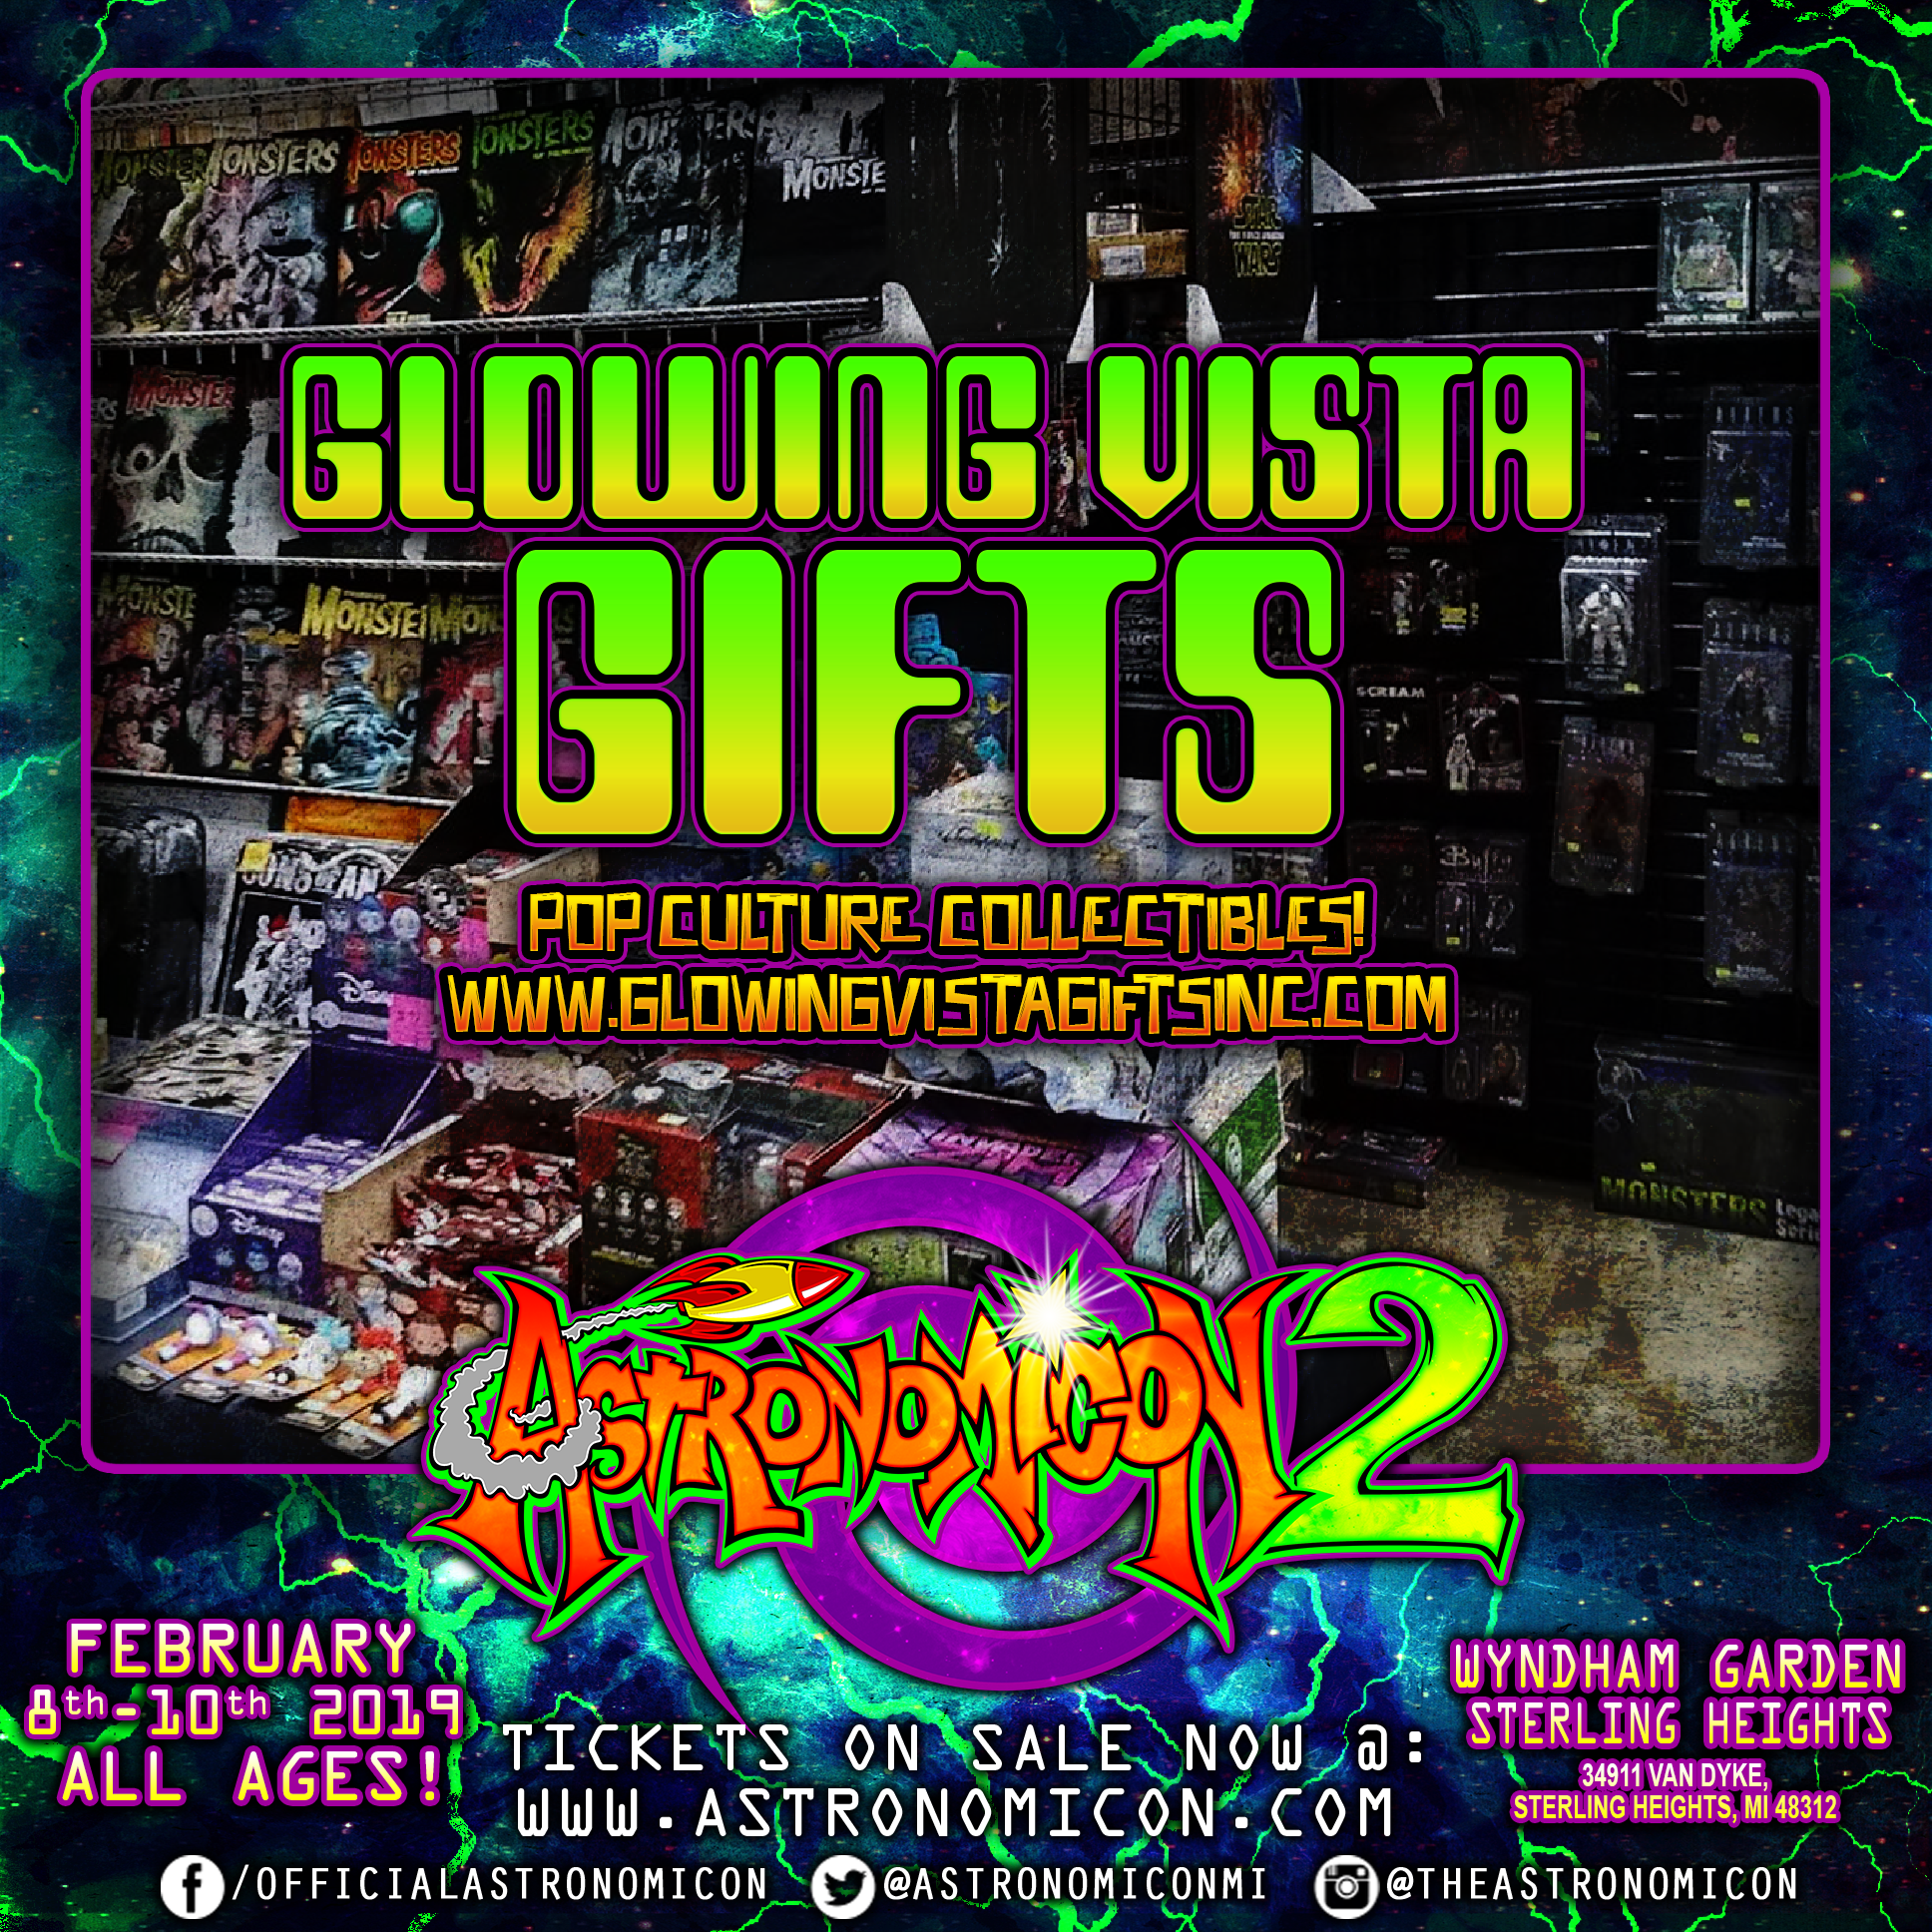 Astronomicon 2 Glowing Vista Gifts IG Ad.png